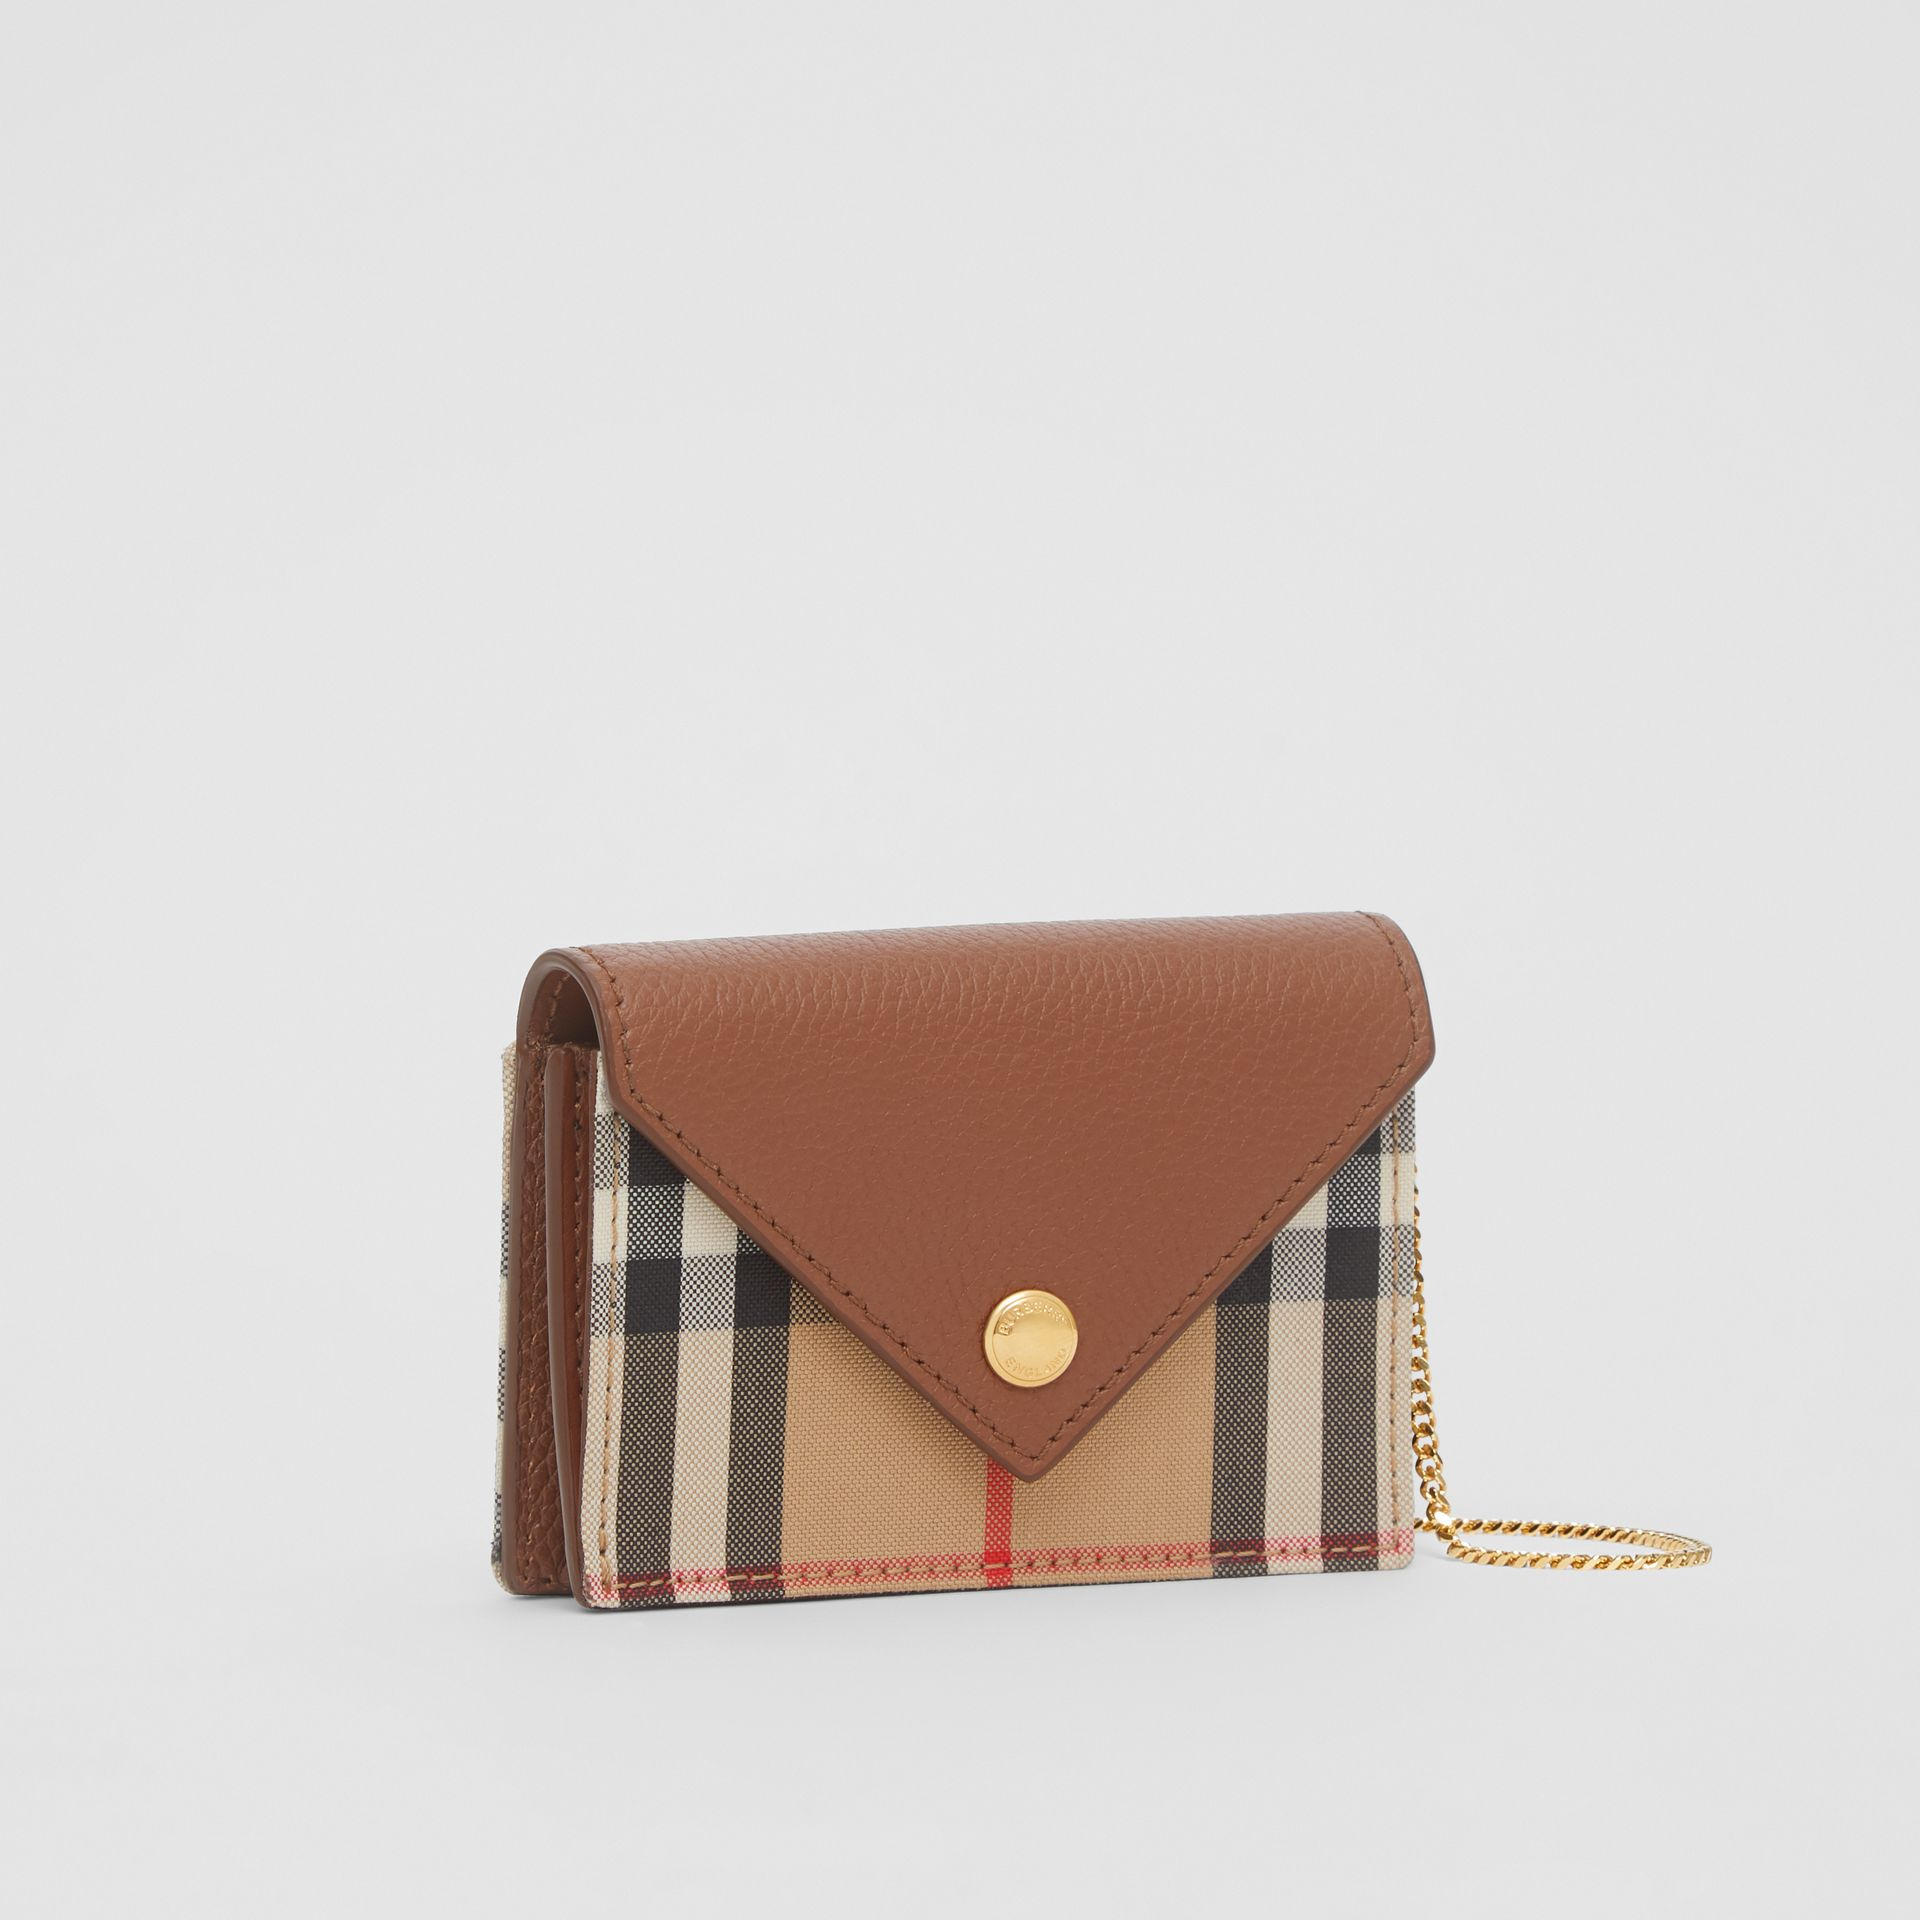 Vintage Check and Leather Card Case with Strap in Tan - Women | Burberry - gallery image 2